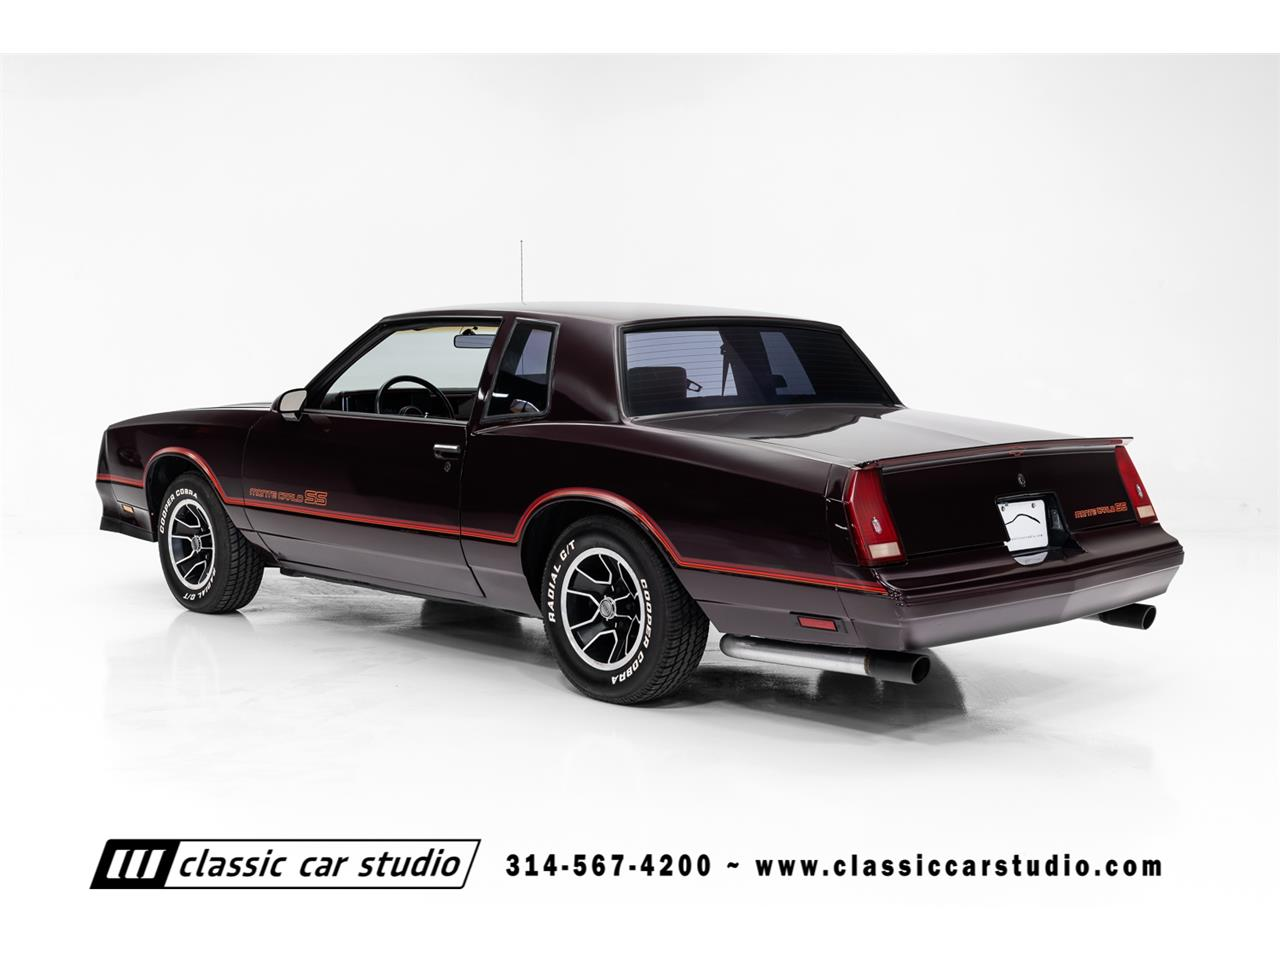 1988 Chevrolet Monte Carlo SS (CC-1166340) for sale in SAINT LOUIS, Missouri